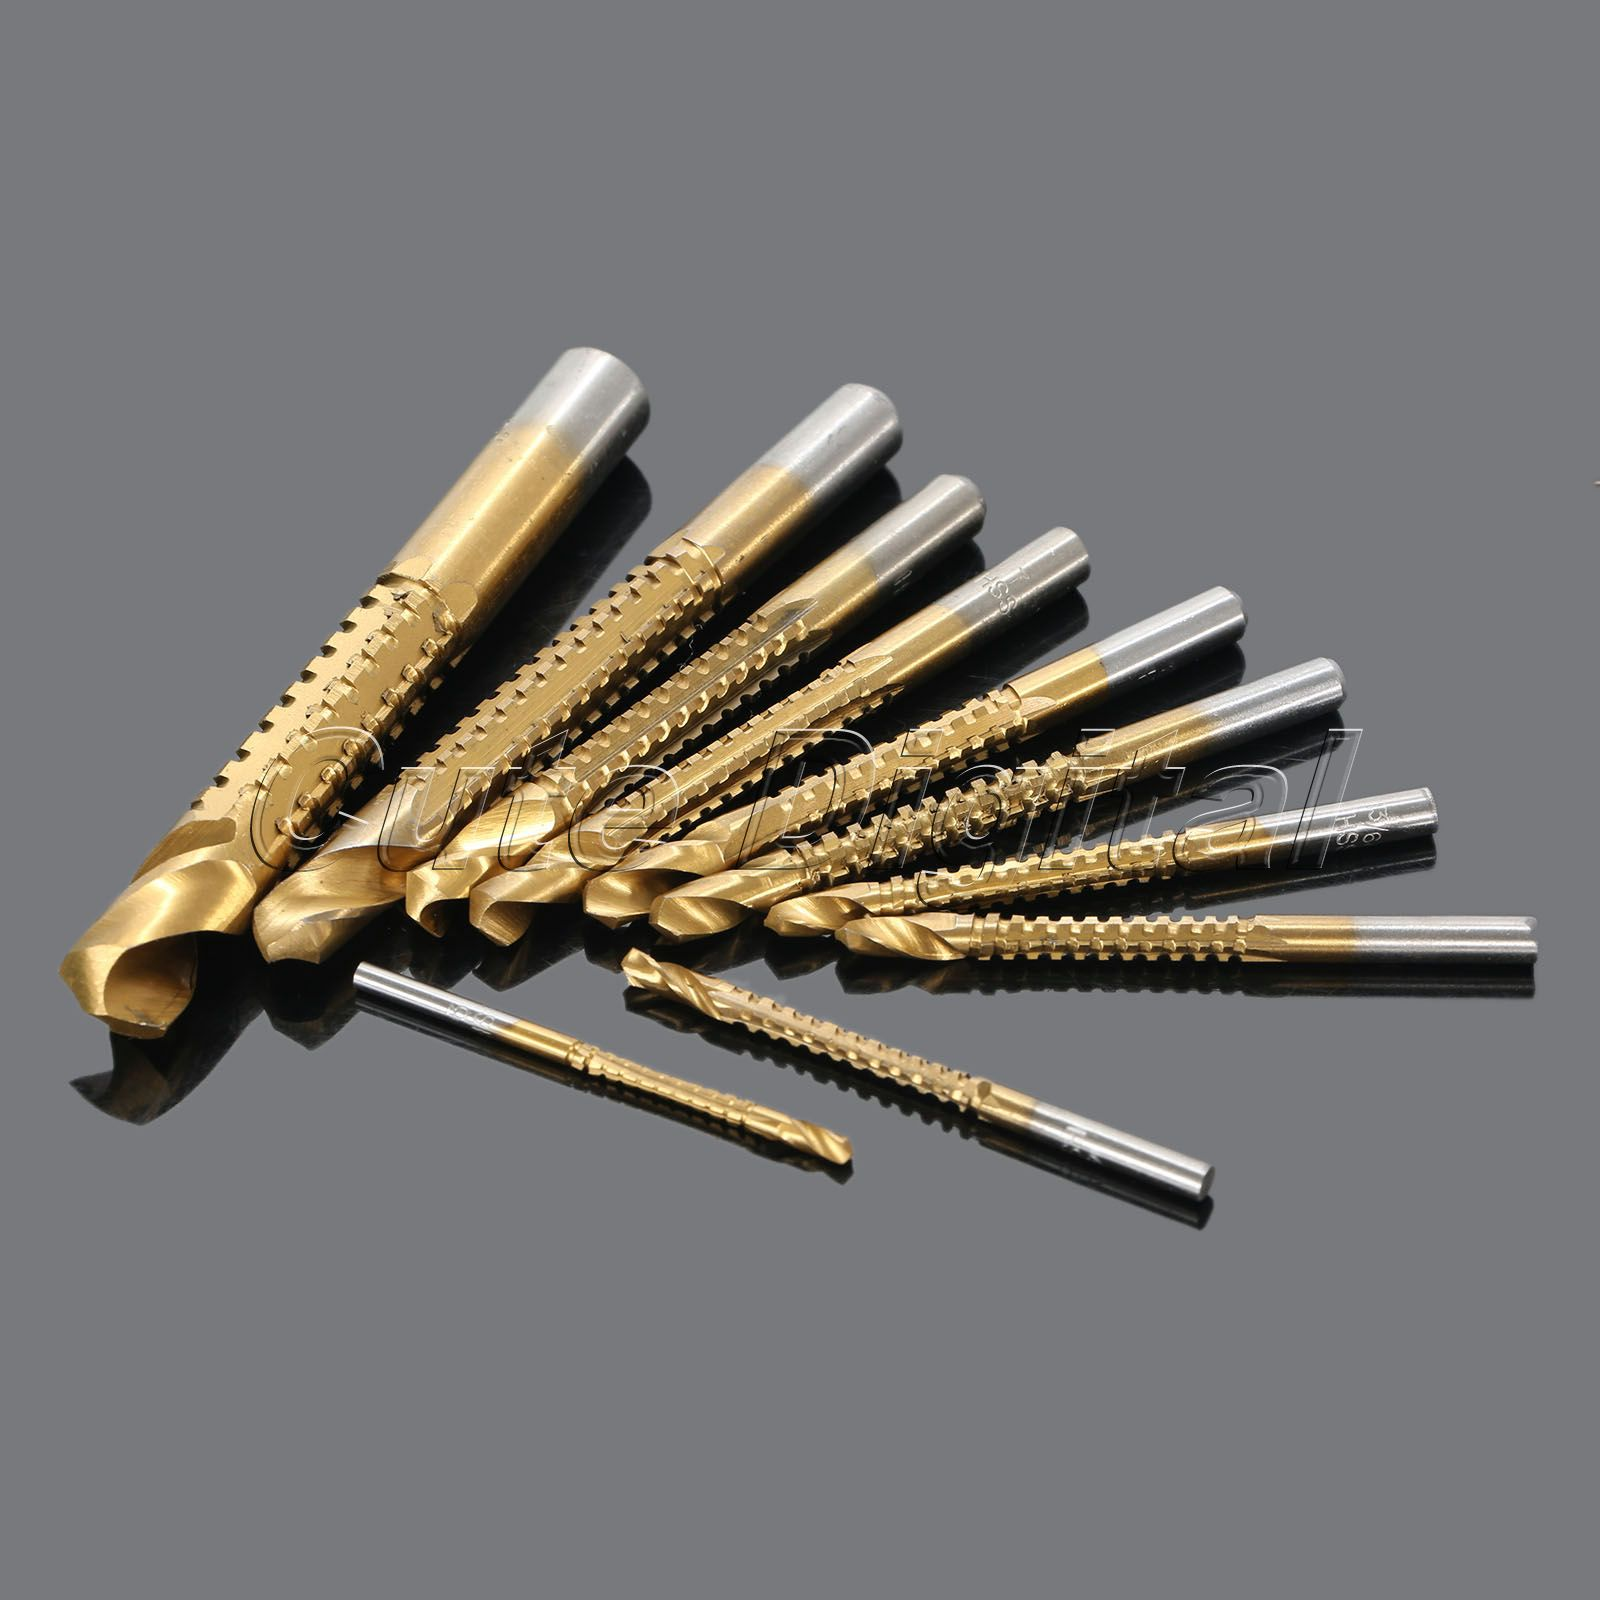 10Pcs/set Titanium Coated HSS High Speed Steel Saw Drill Bit Set Cutter Tools Woodworking Hole Saw Drill Bits Power Tools 3-13mm 13pcs set hss high speed steel twist drill bit for metal titanium coated drill 1 4 hex shank 1 5 6 5mm power tools accessories